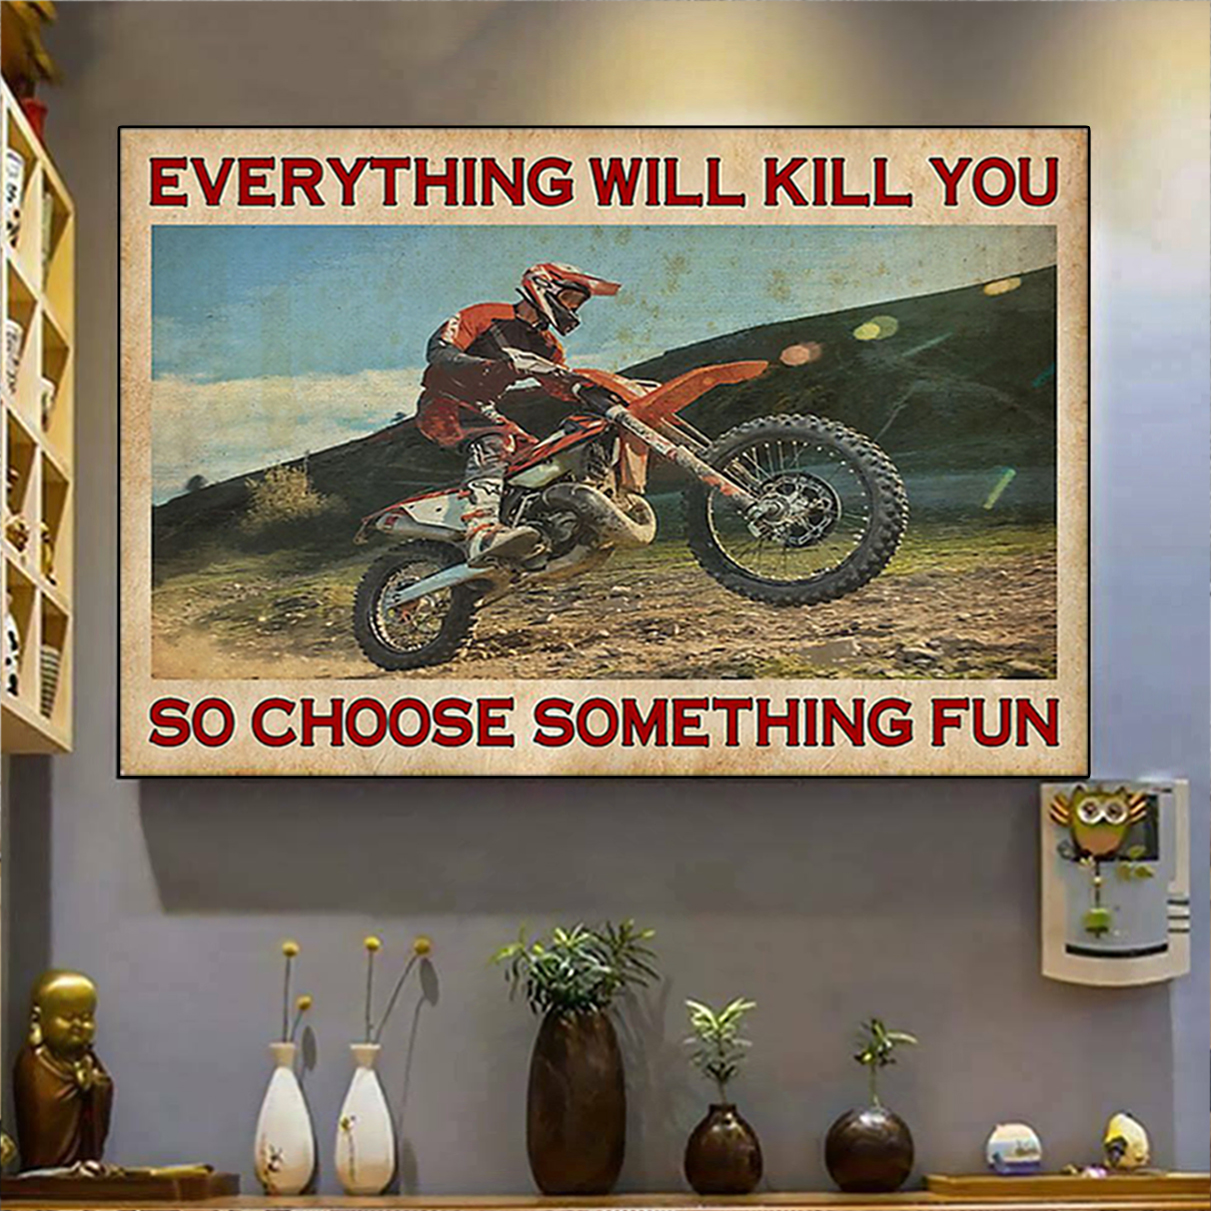 Motocross everything will kill you poster A2